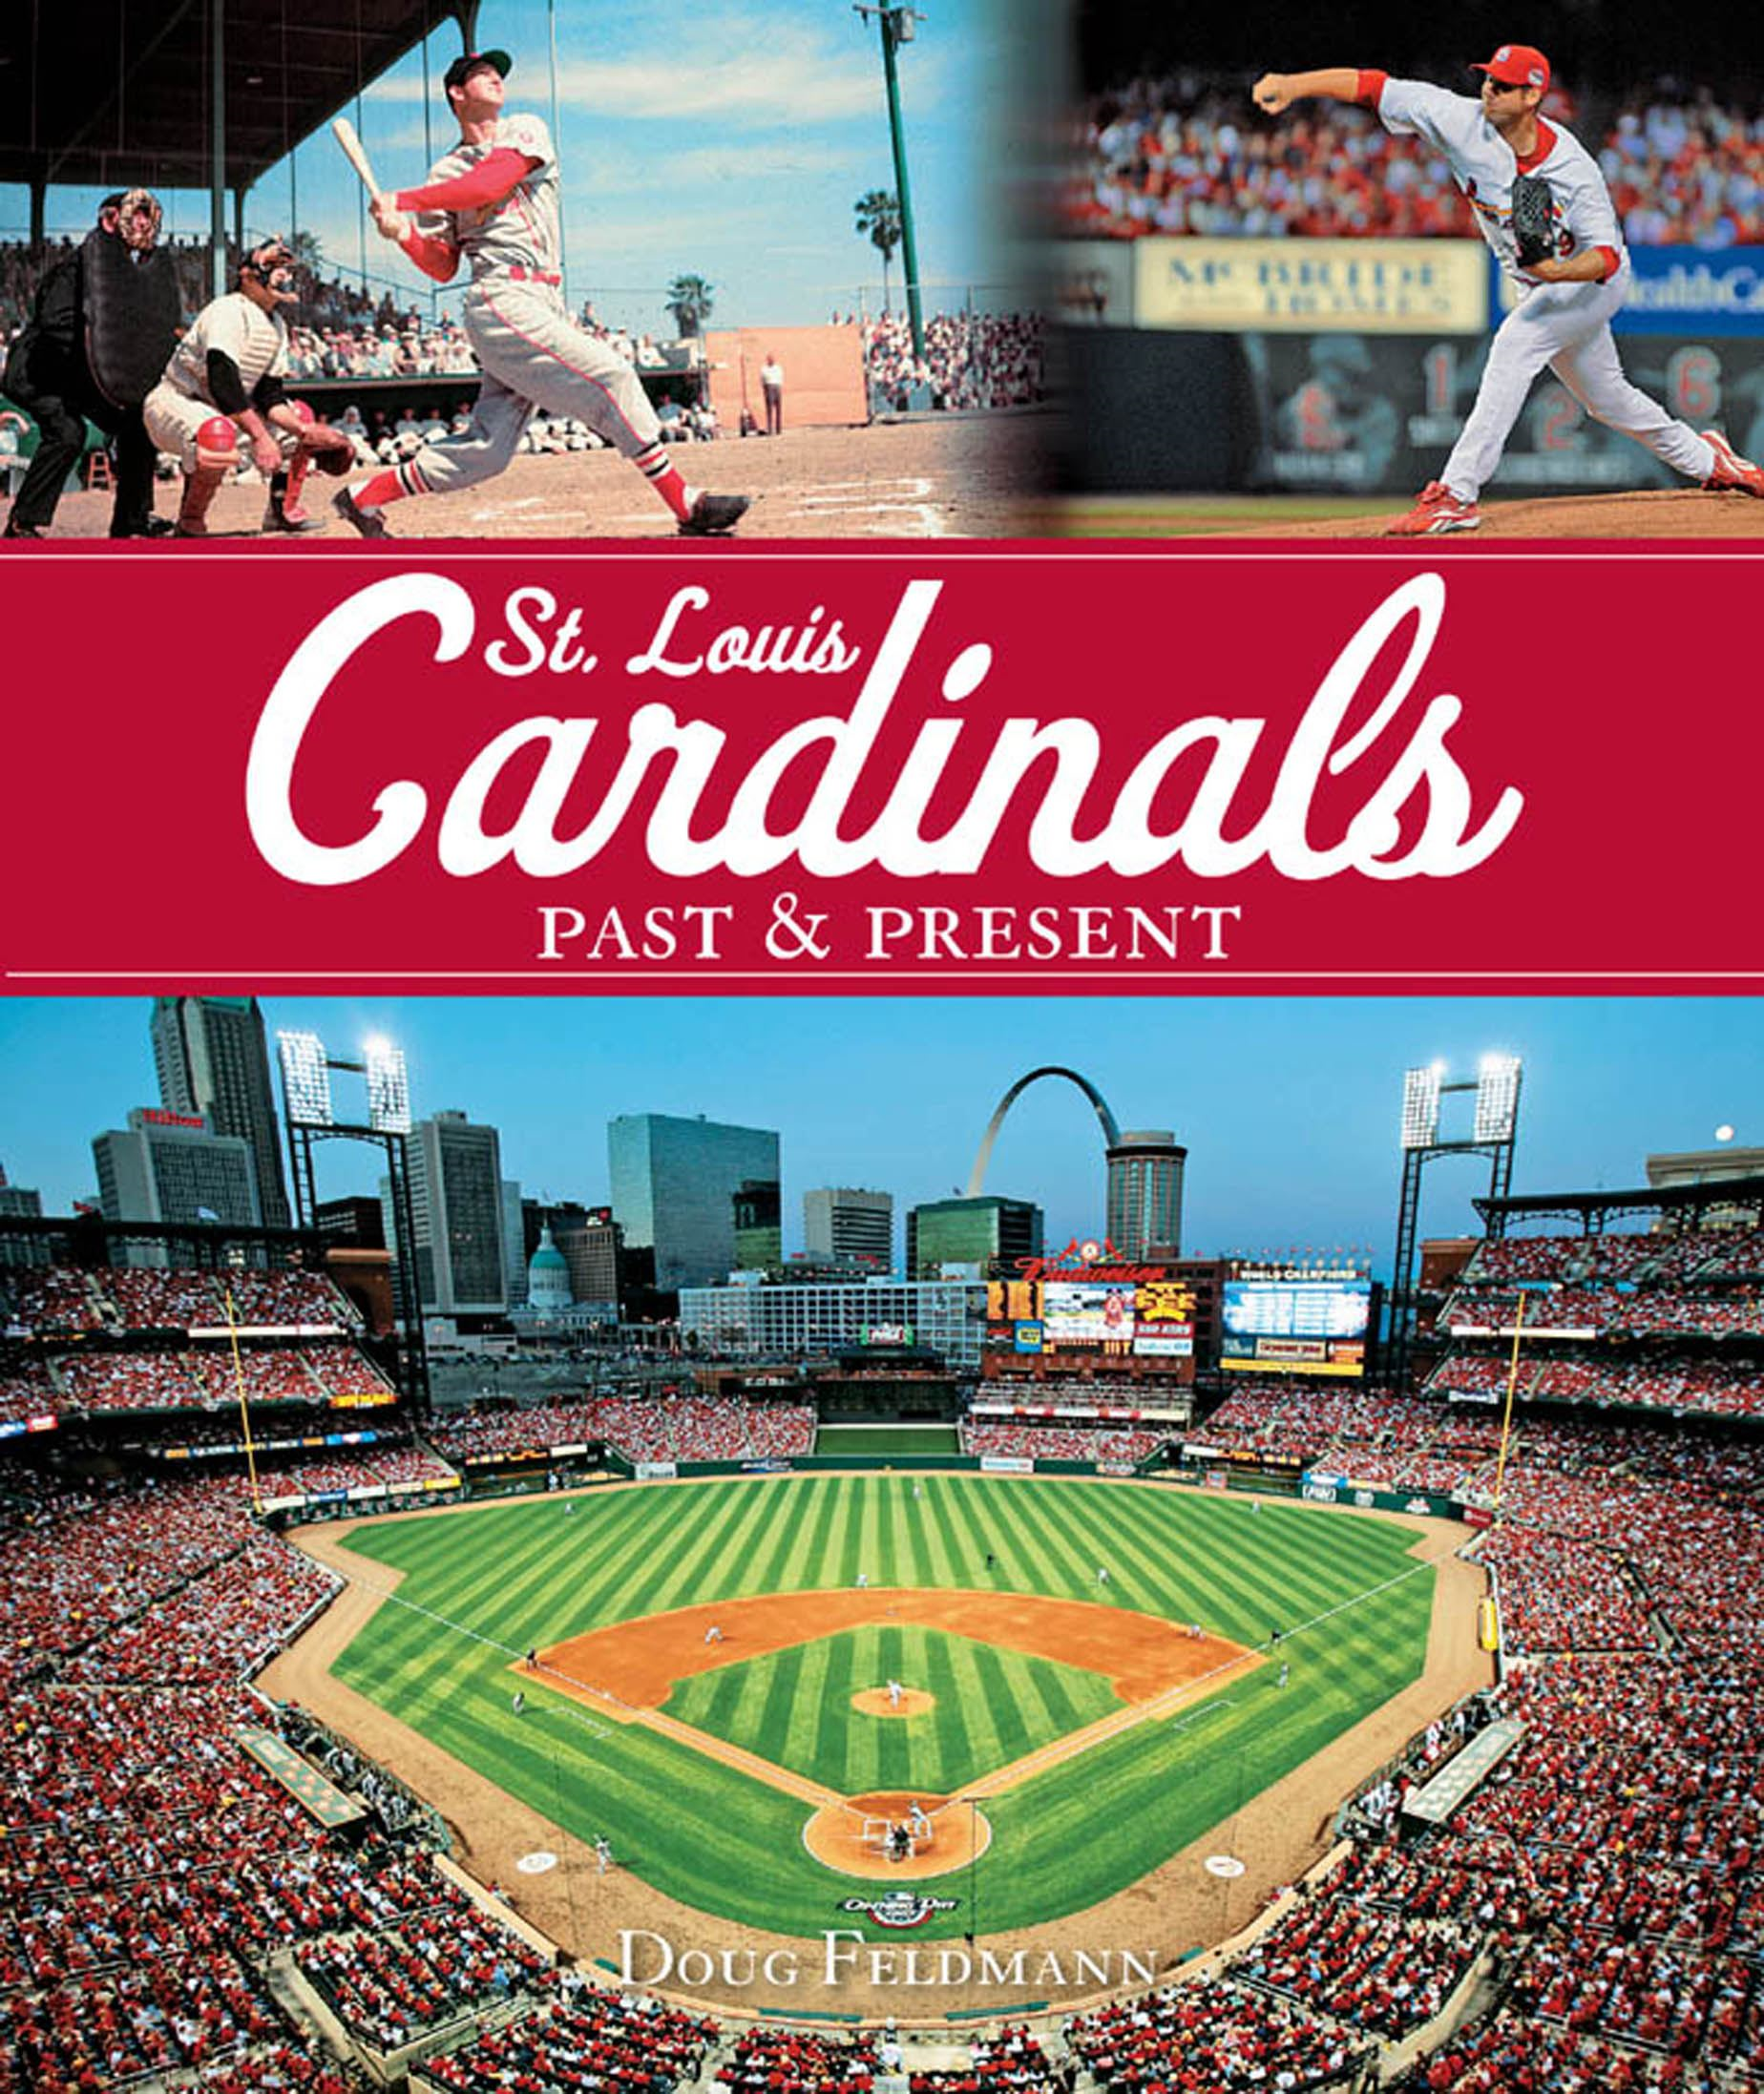 St. Louis Cardinals Past & Present